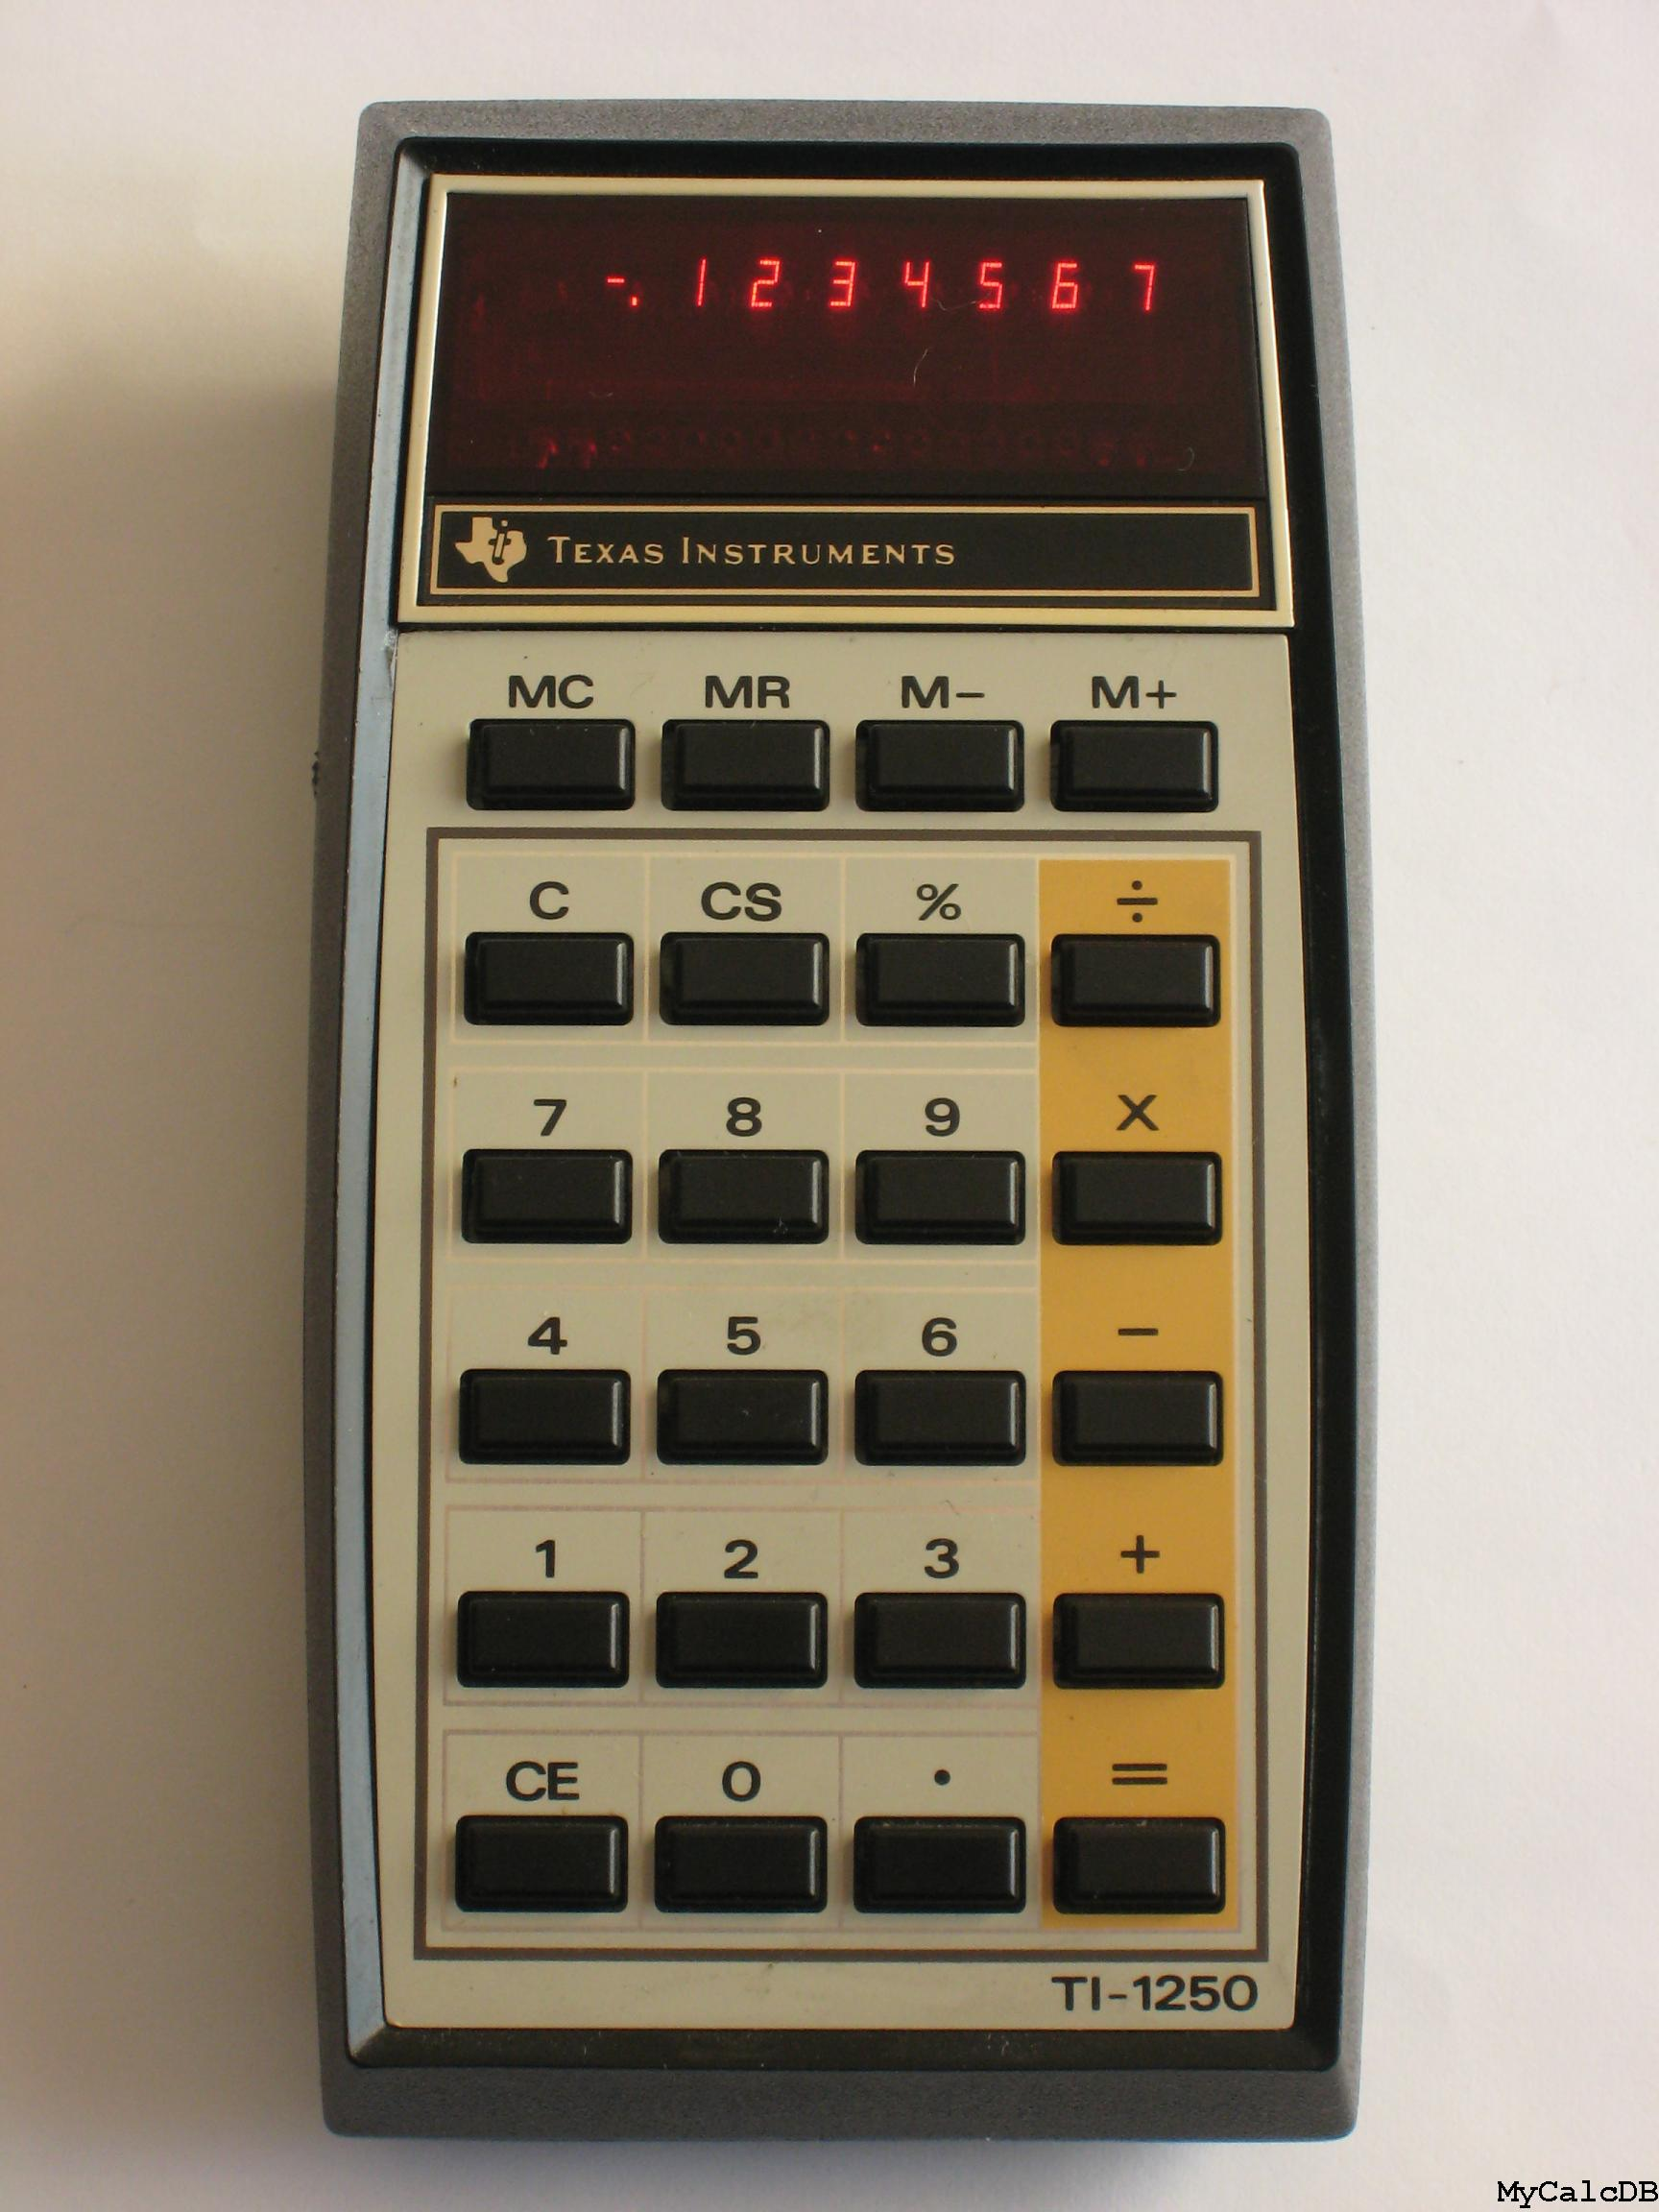 Texas Instruments TI-1250